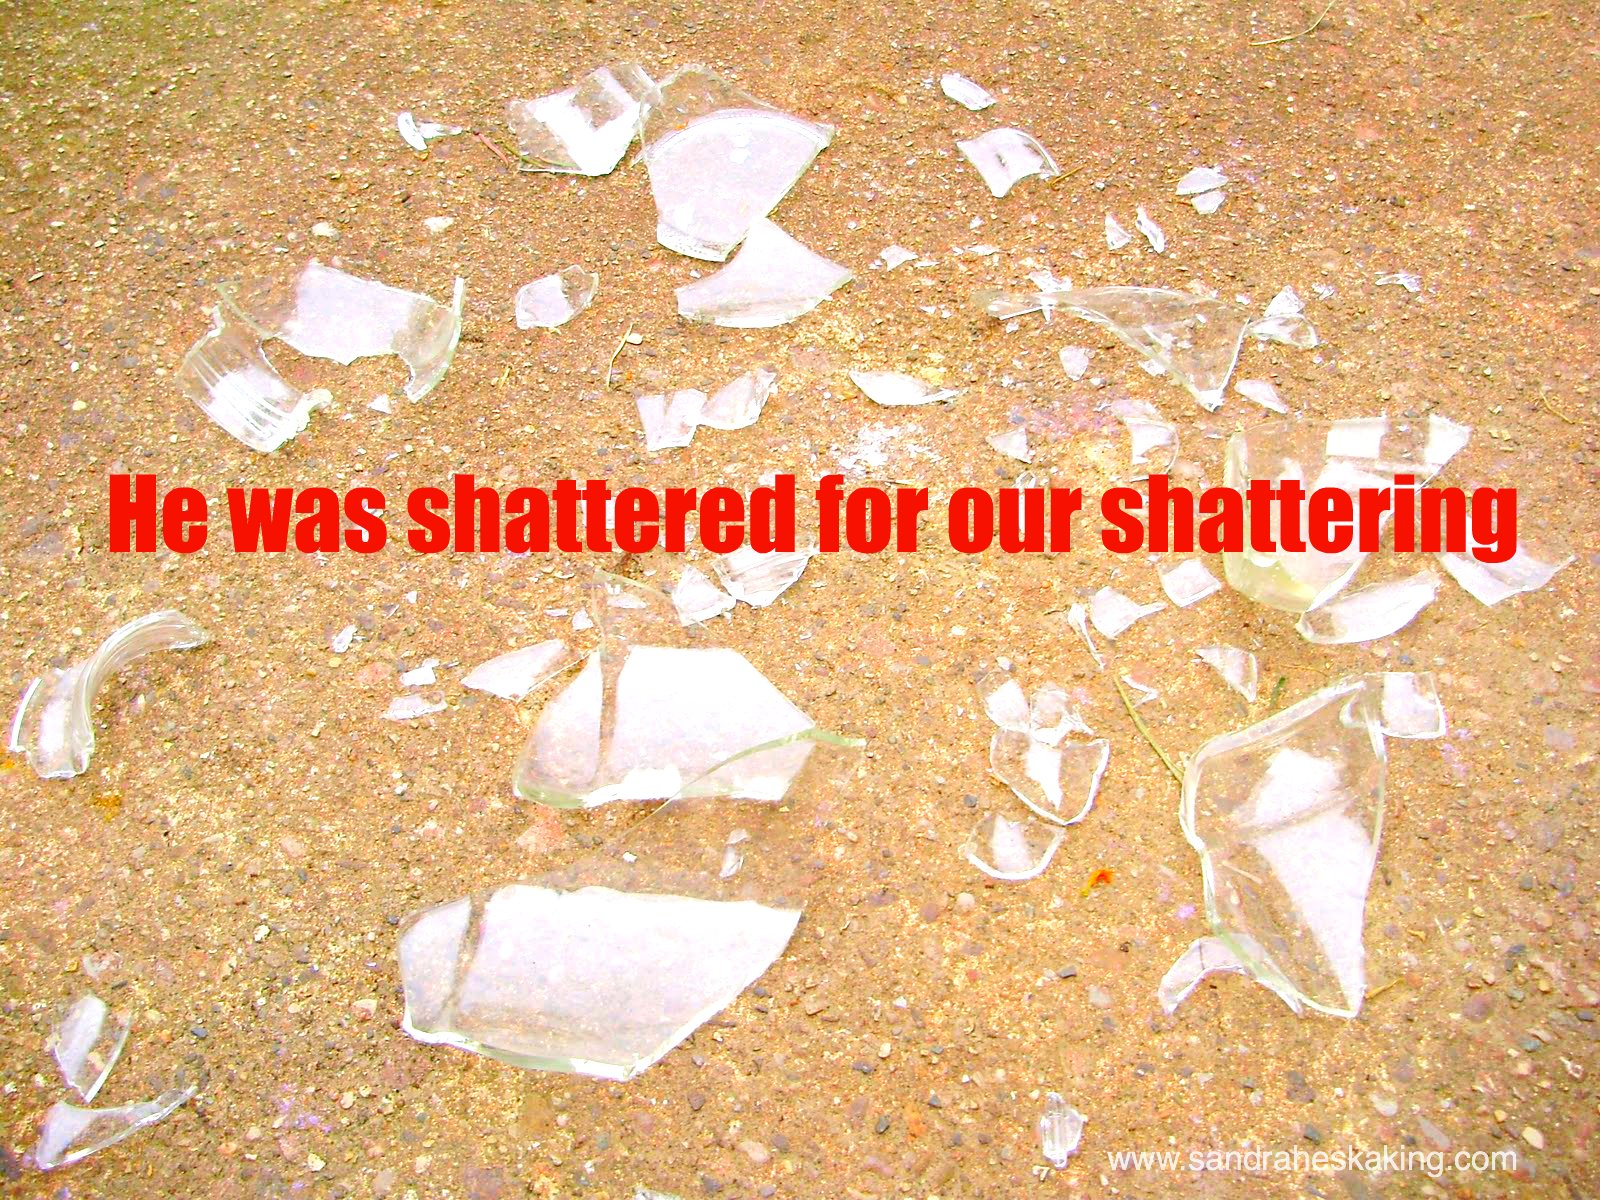 five minute friday: shattered